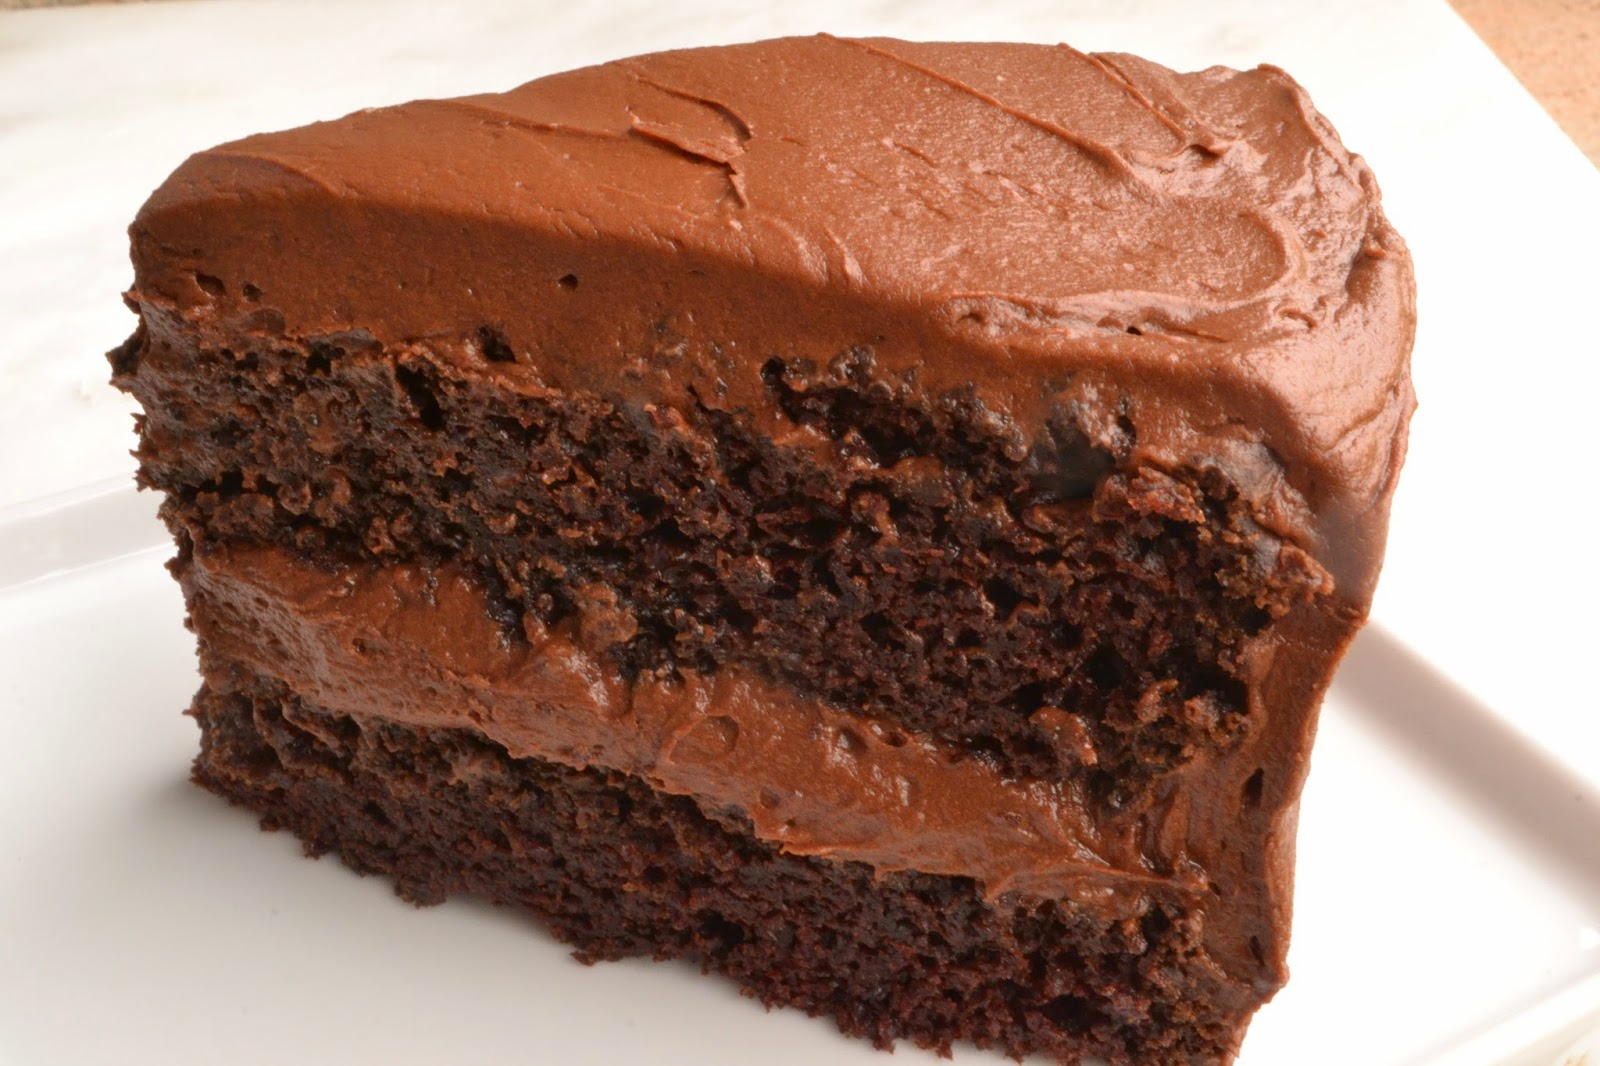 This recipe makes decadent chocolate cake and delicious chocolate cupcakes Dont skip the silky frosting its the best part!